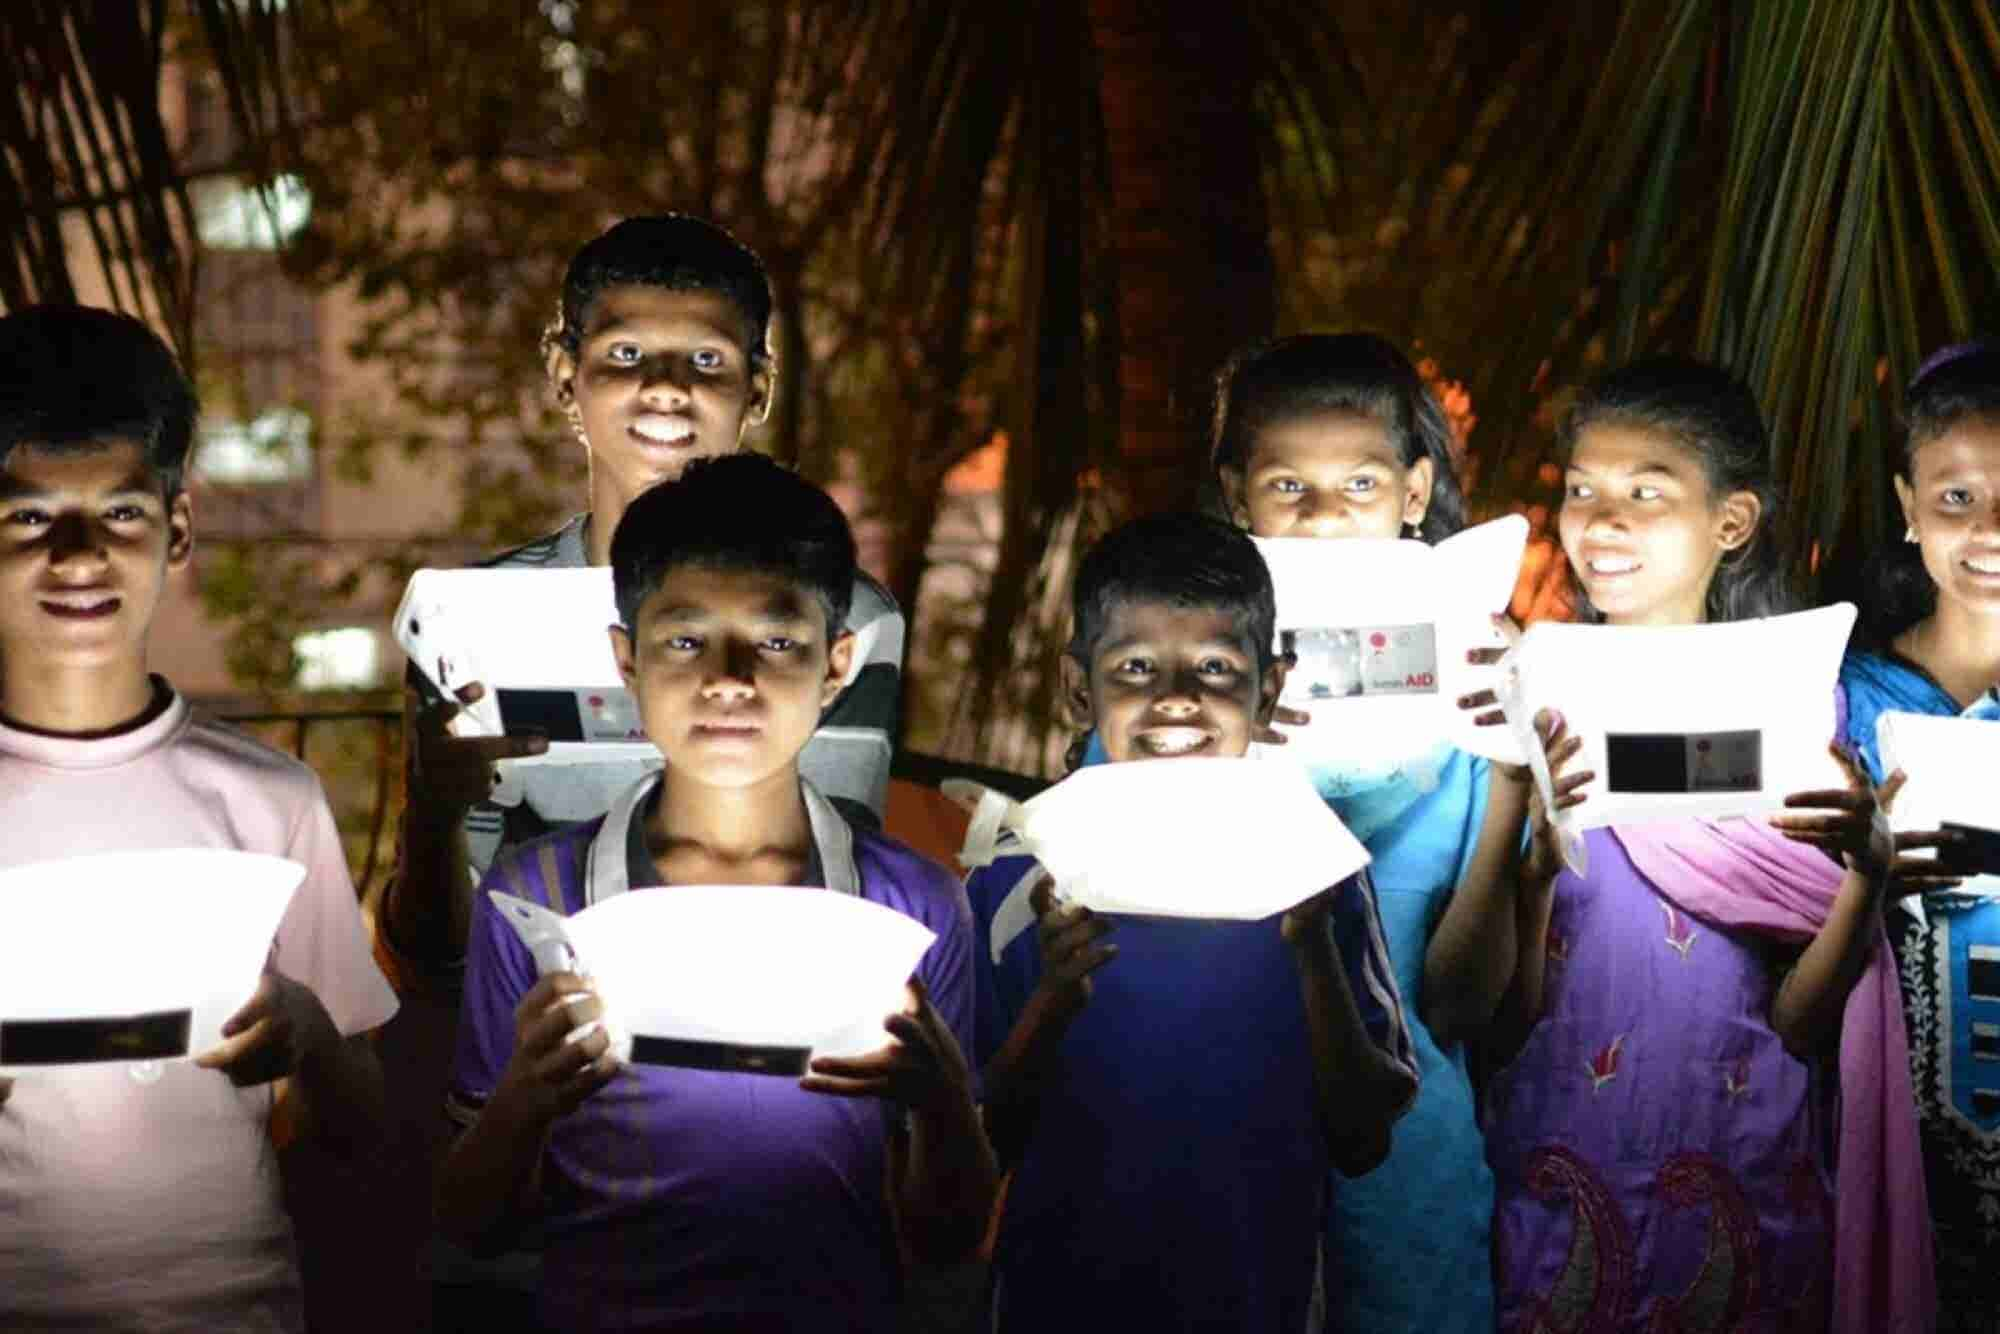 LuminAID Founders Light up the Darkness, and Their Sales